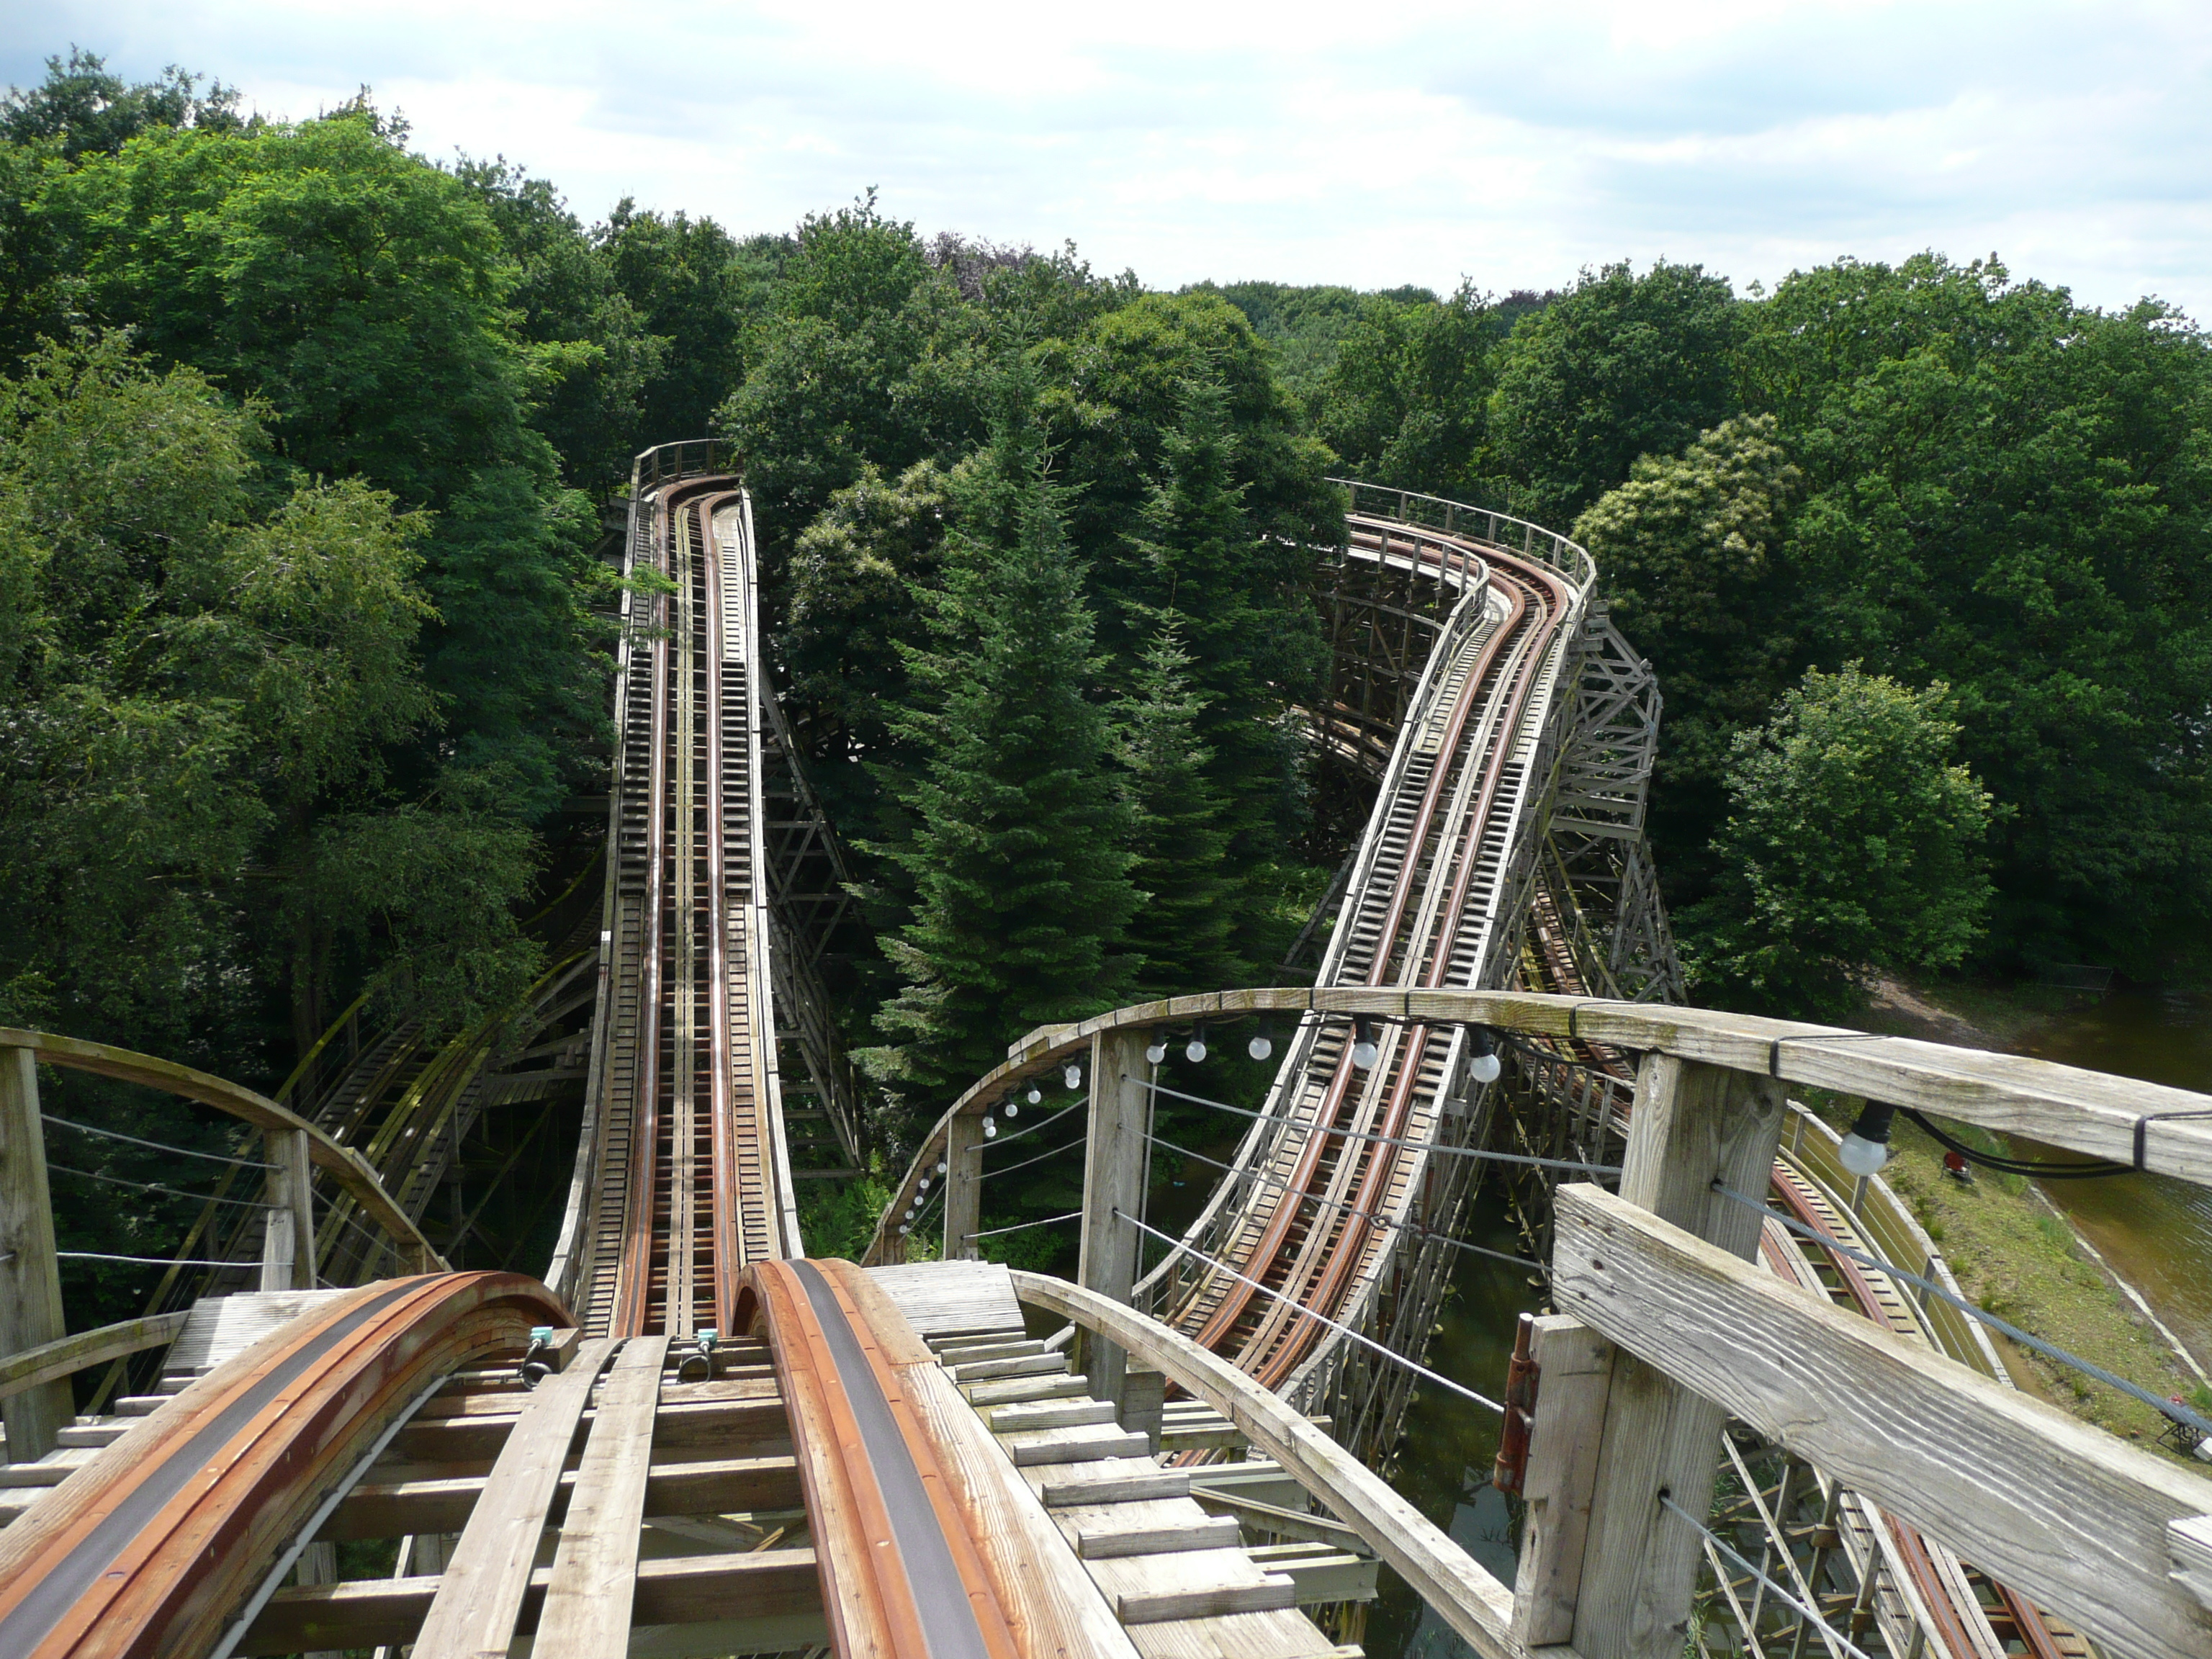 View of a wooden roller coaster track among green trees from the viewpoint of a person riding in the front car.